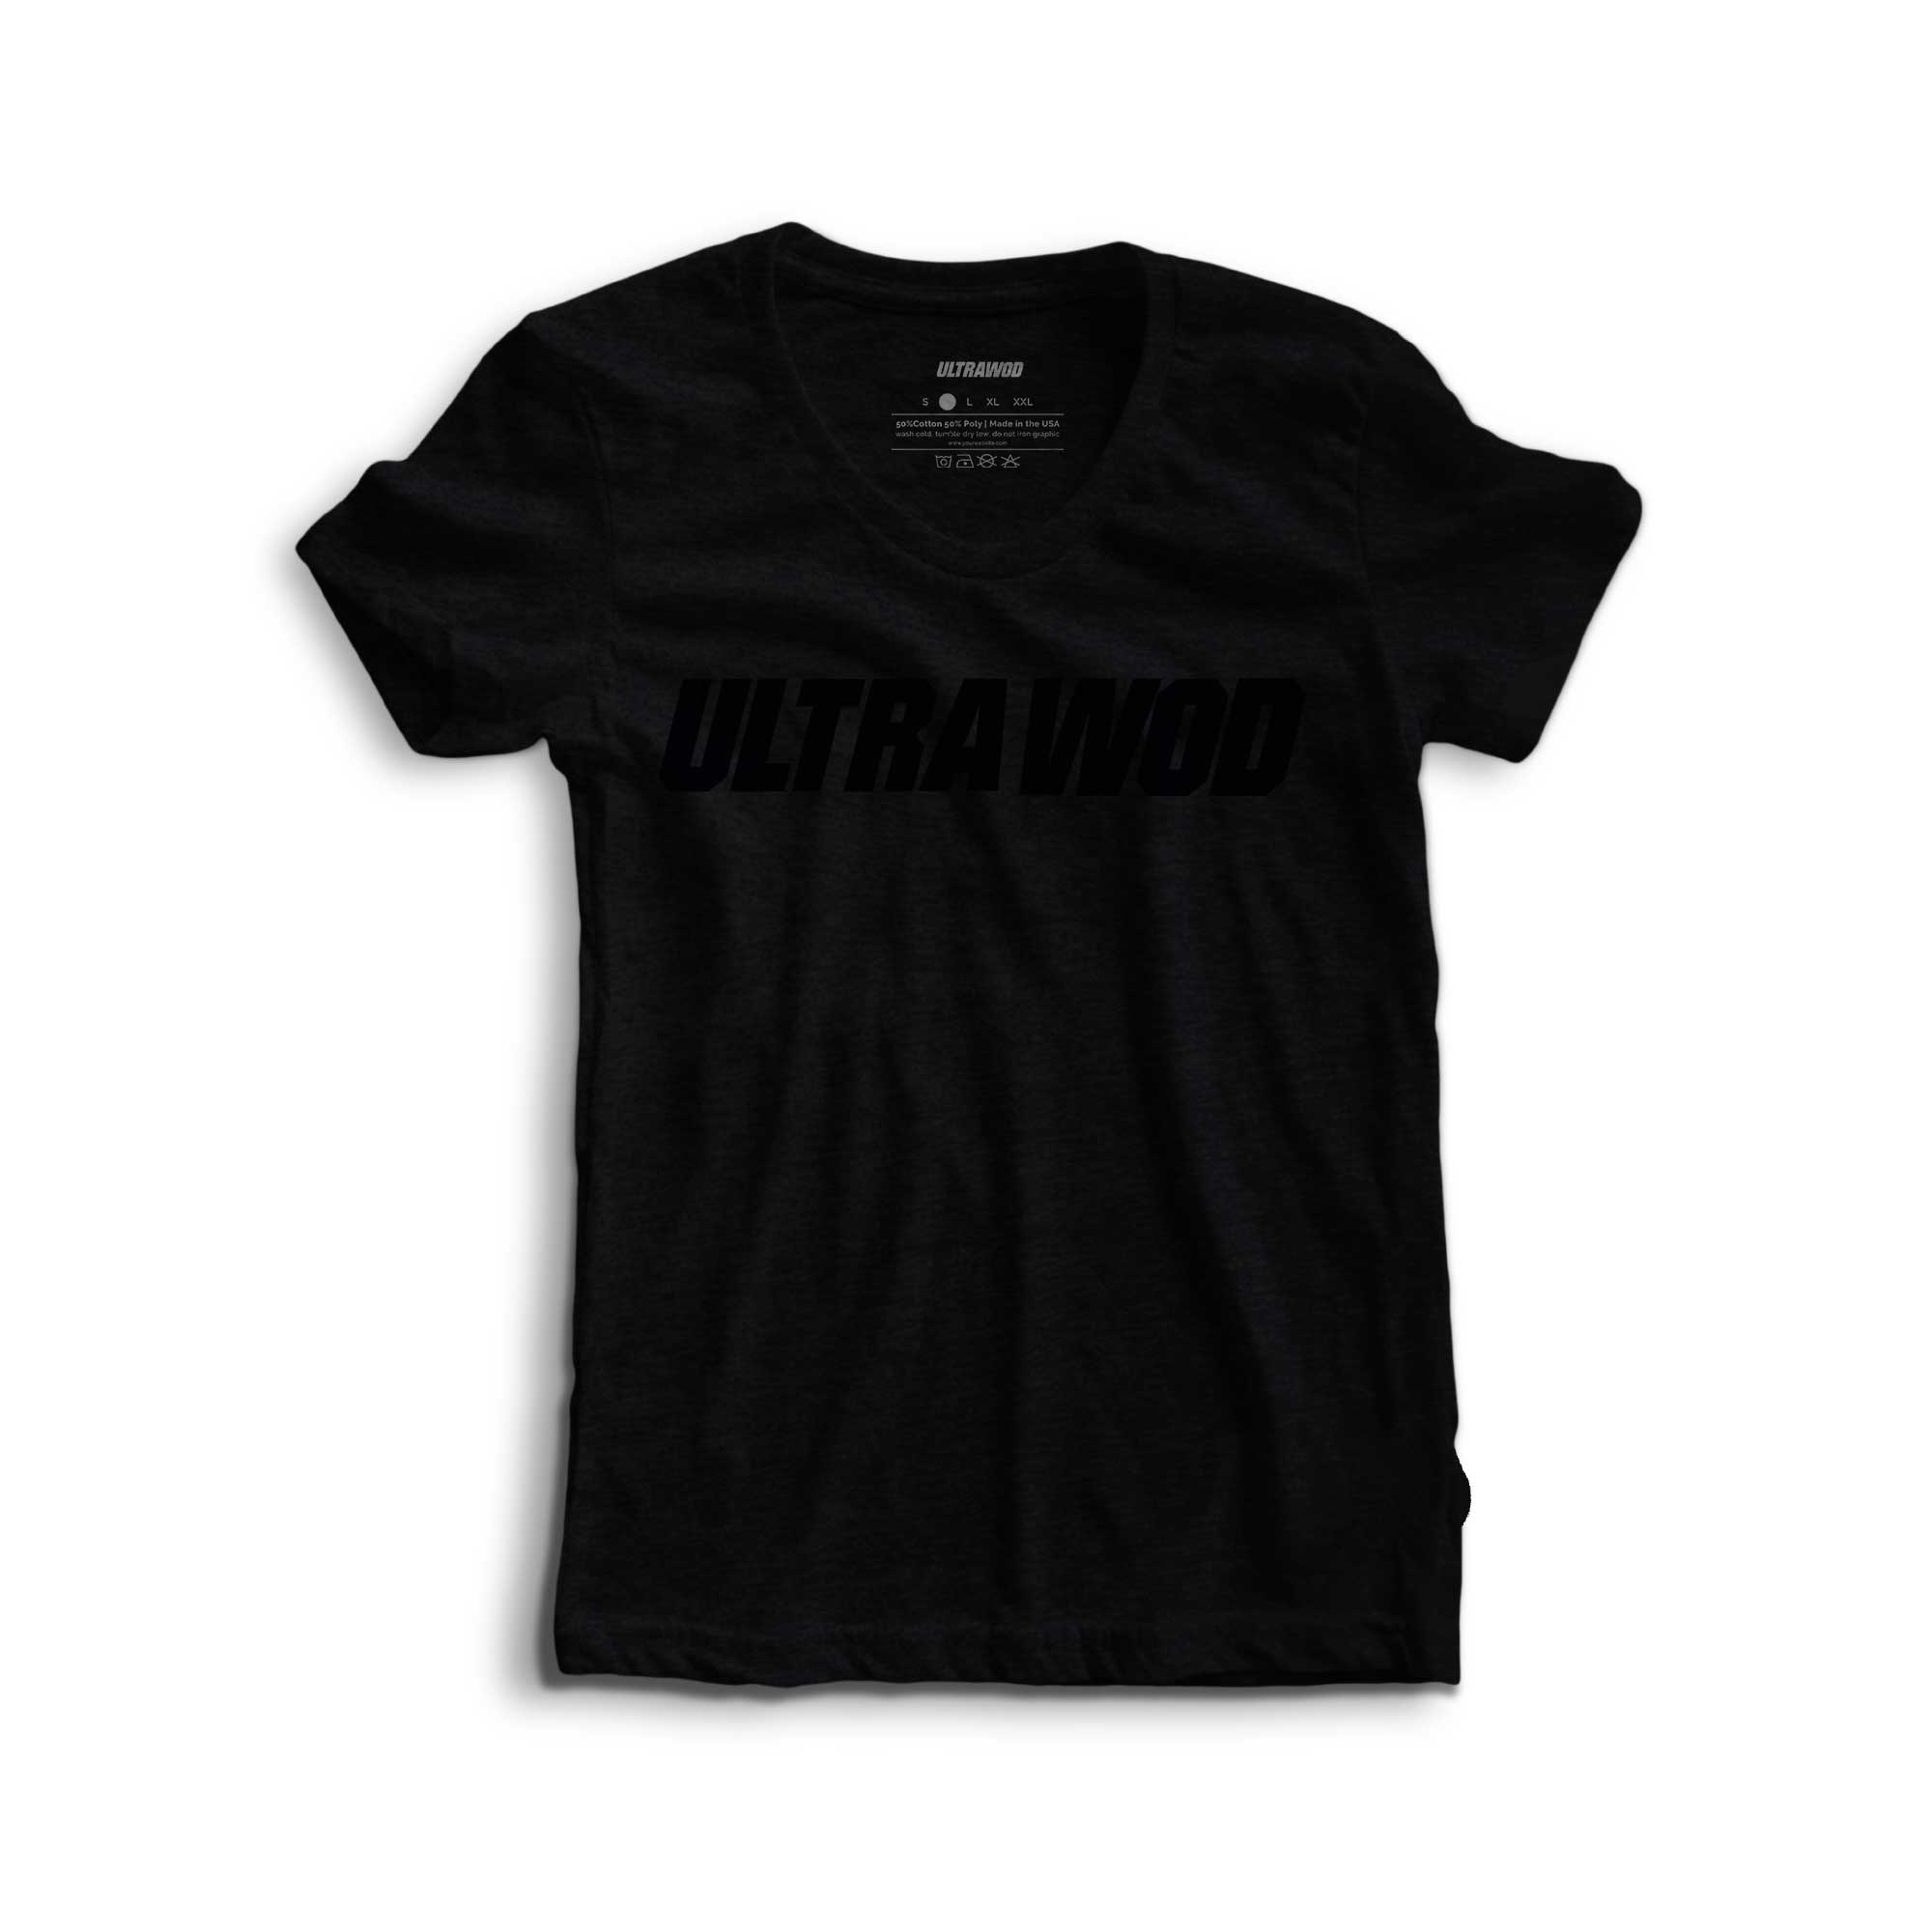 Camiseta UltraWod All Black Feminina